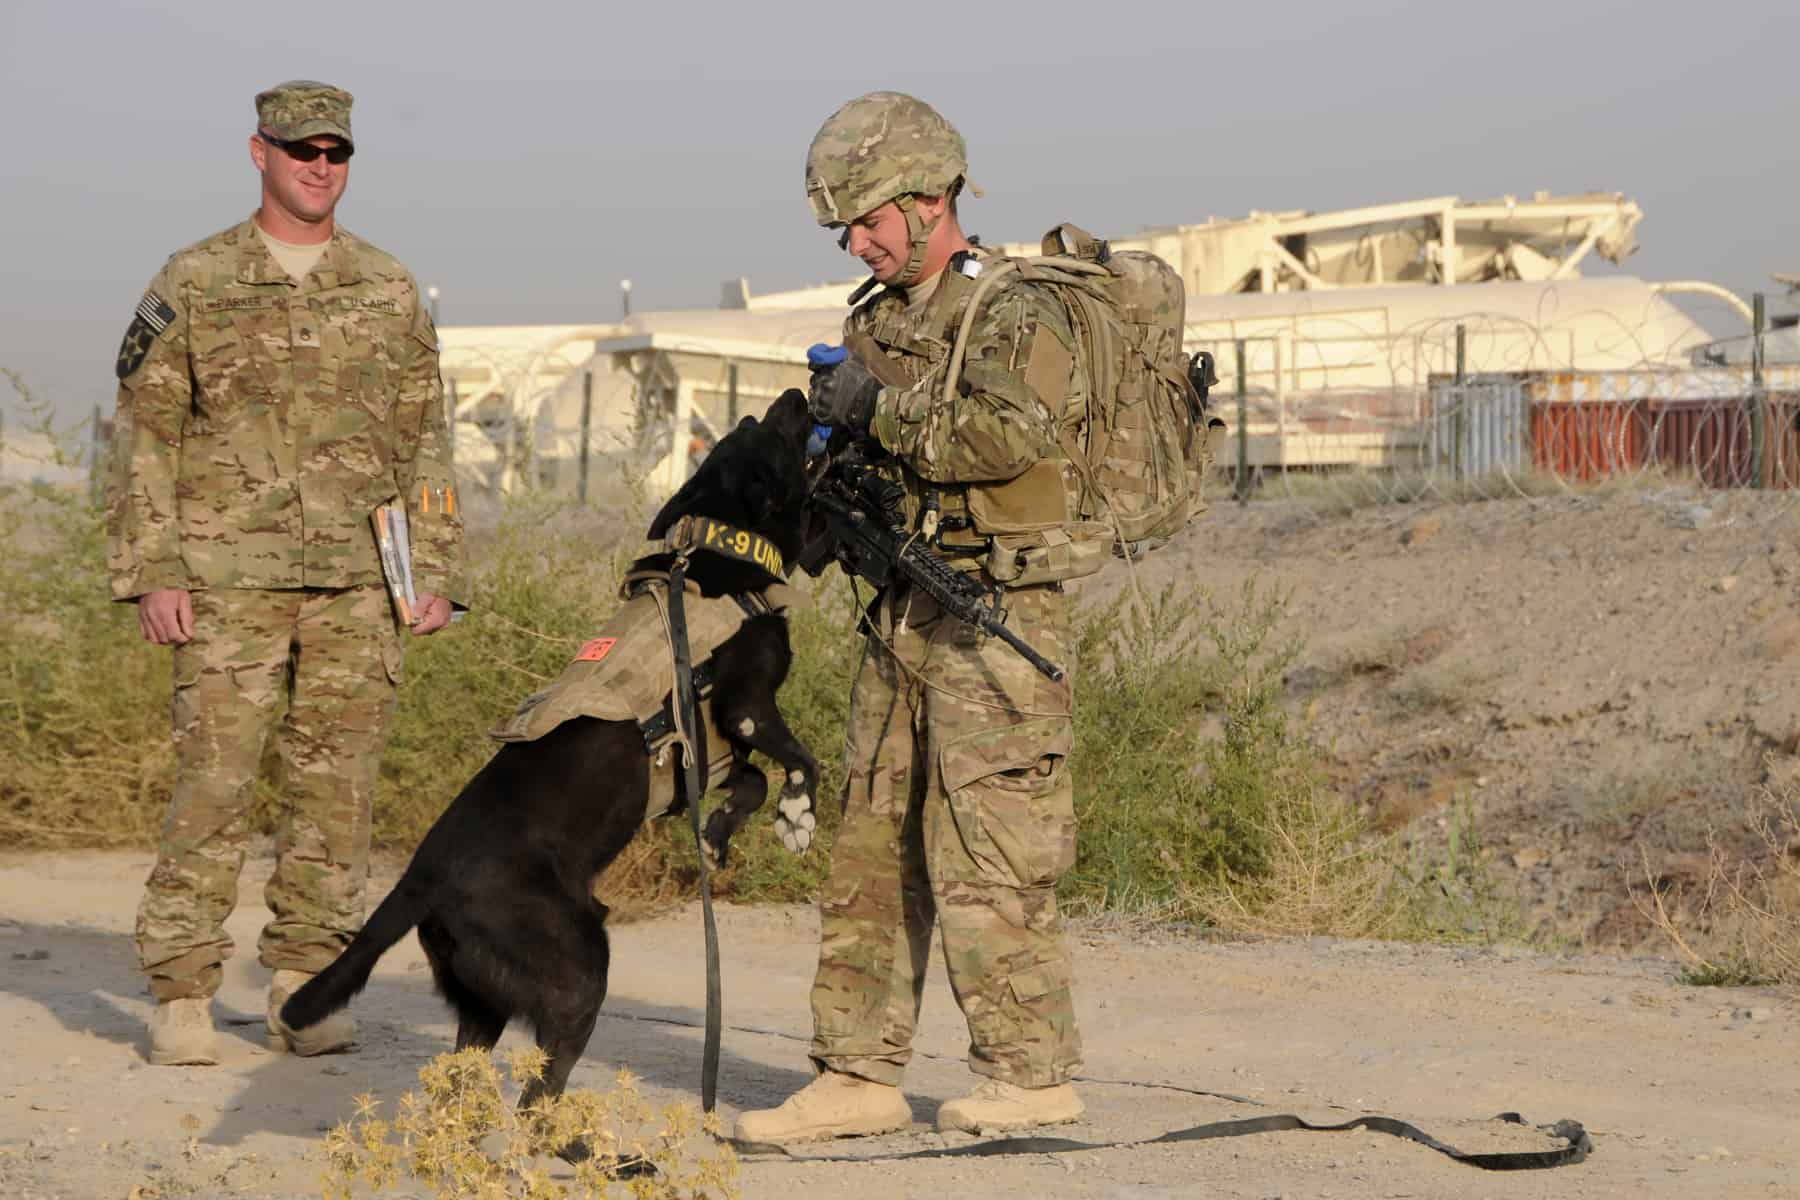 U.S. Air Force Staff Sgt. Larry Harris, a Military Working Dog handler, rewards his dog, Aaron, for finding simulated explosives buried along a road at Kandahar Airfield, Afghanistan on July 9, 2012 during a training exercise while U.S. Army Staff Sgt. Joshua Parker looks on. The handlers and their dogs rotate through Kandahar Airfield for validation prior to moving out to Forward Operating Bases around the country where they will lead combat foot patrols and sniff out IEDs and other explosives. (U.S. Air Force photo/TSgt. Stephen Hudson) (U.S. Air Force photo/TSgt. Stephen Hudson)